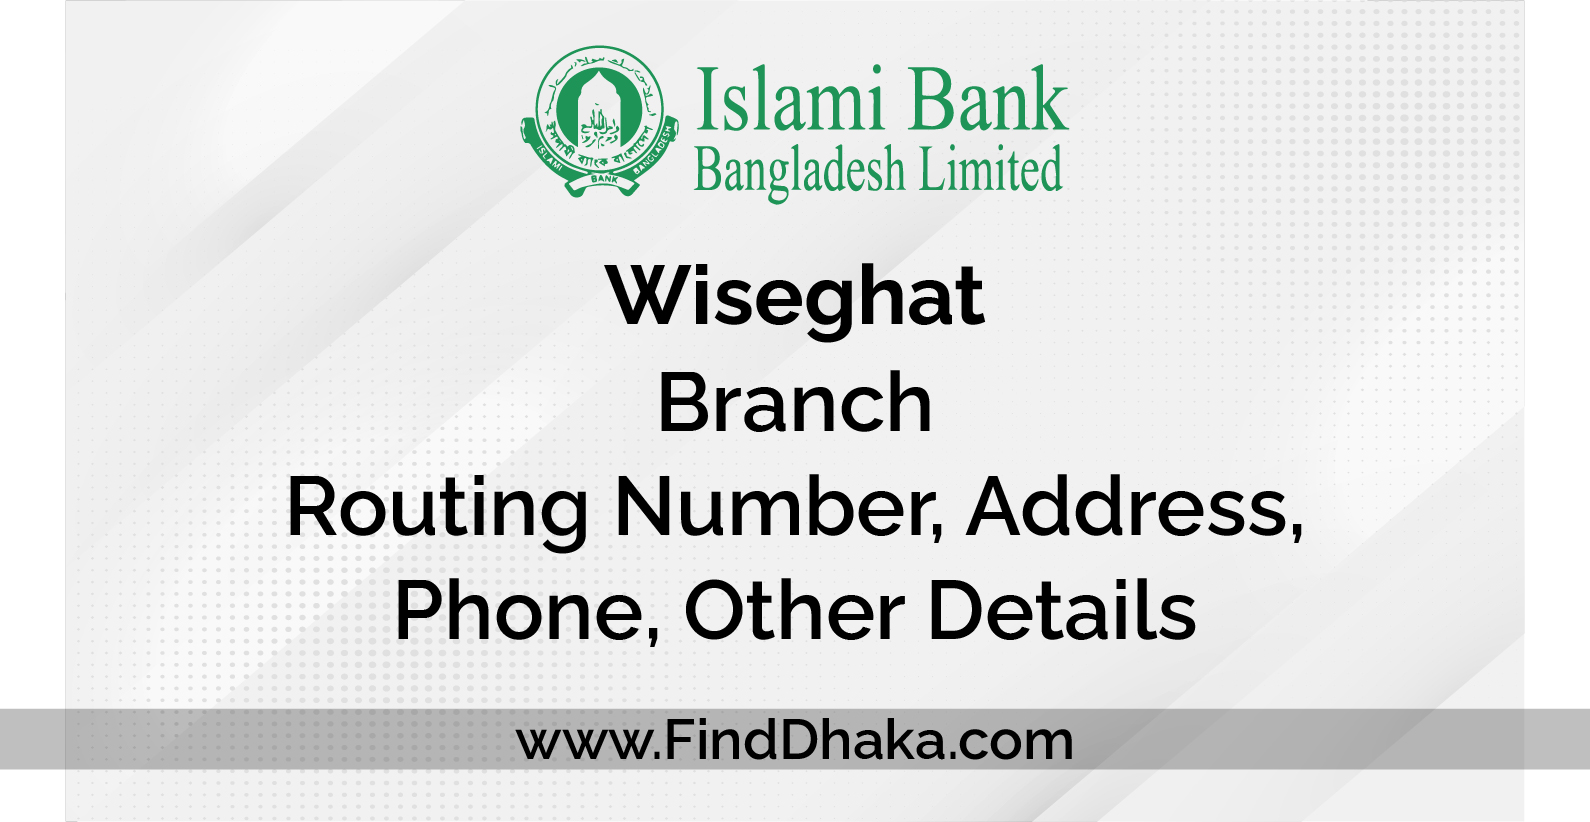 Photo of Islami Bank Wiseghat Branch